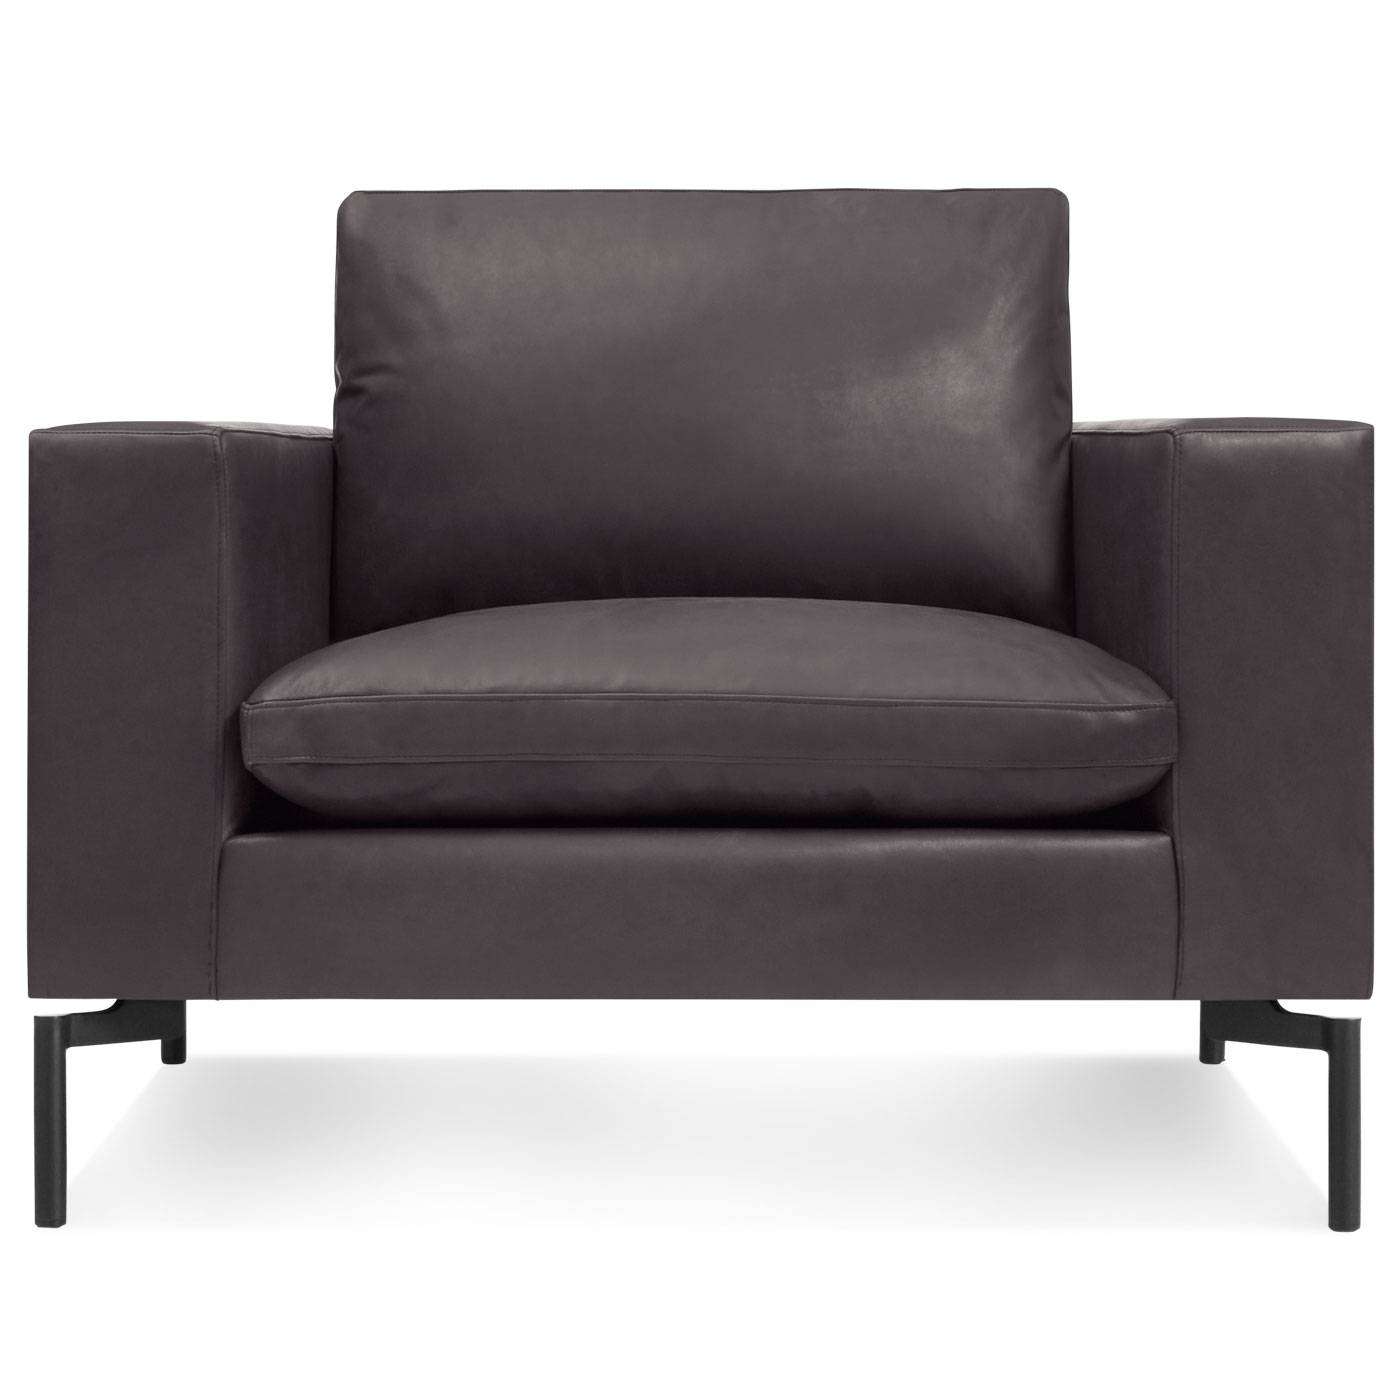 New Standard Modern Leather Lounge Chair | Blu Dot inside Lounge Sofas and Chairs (Image 9 of 12)